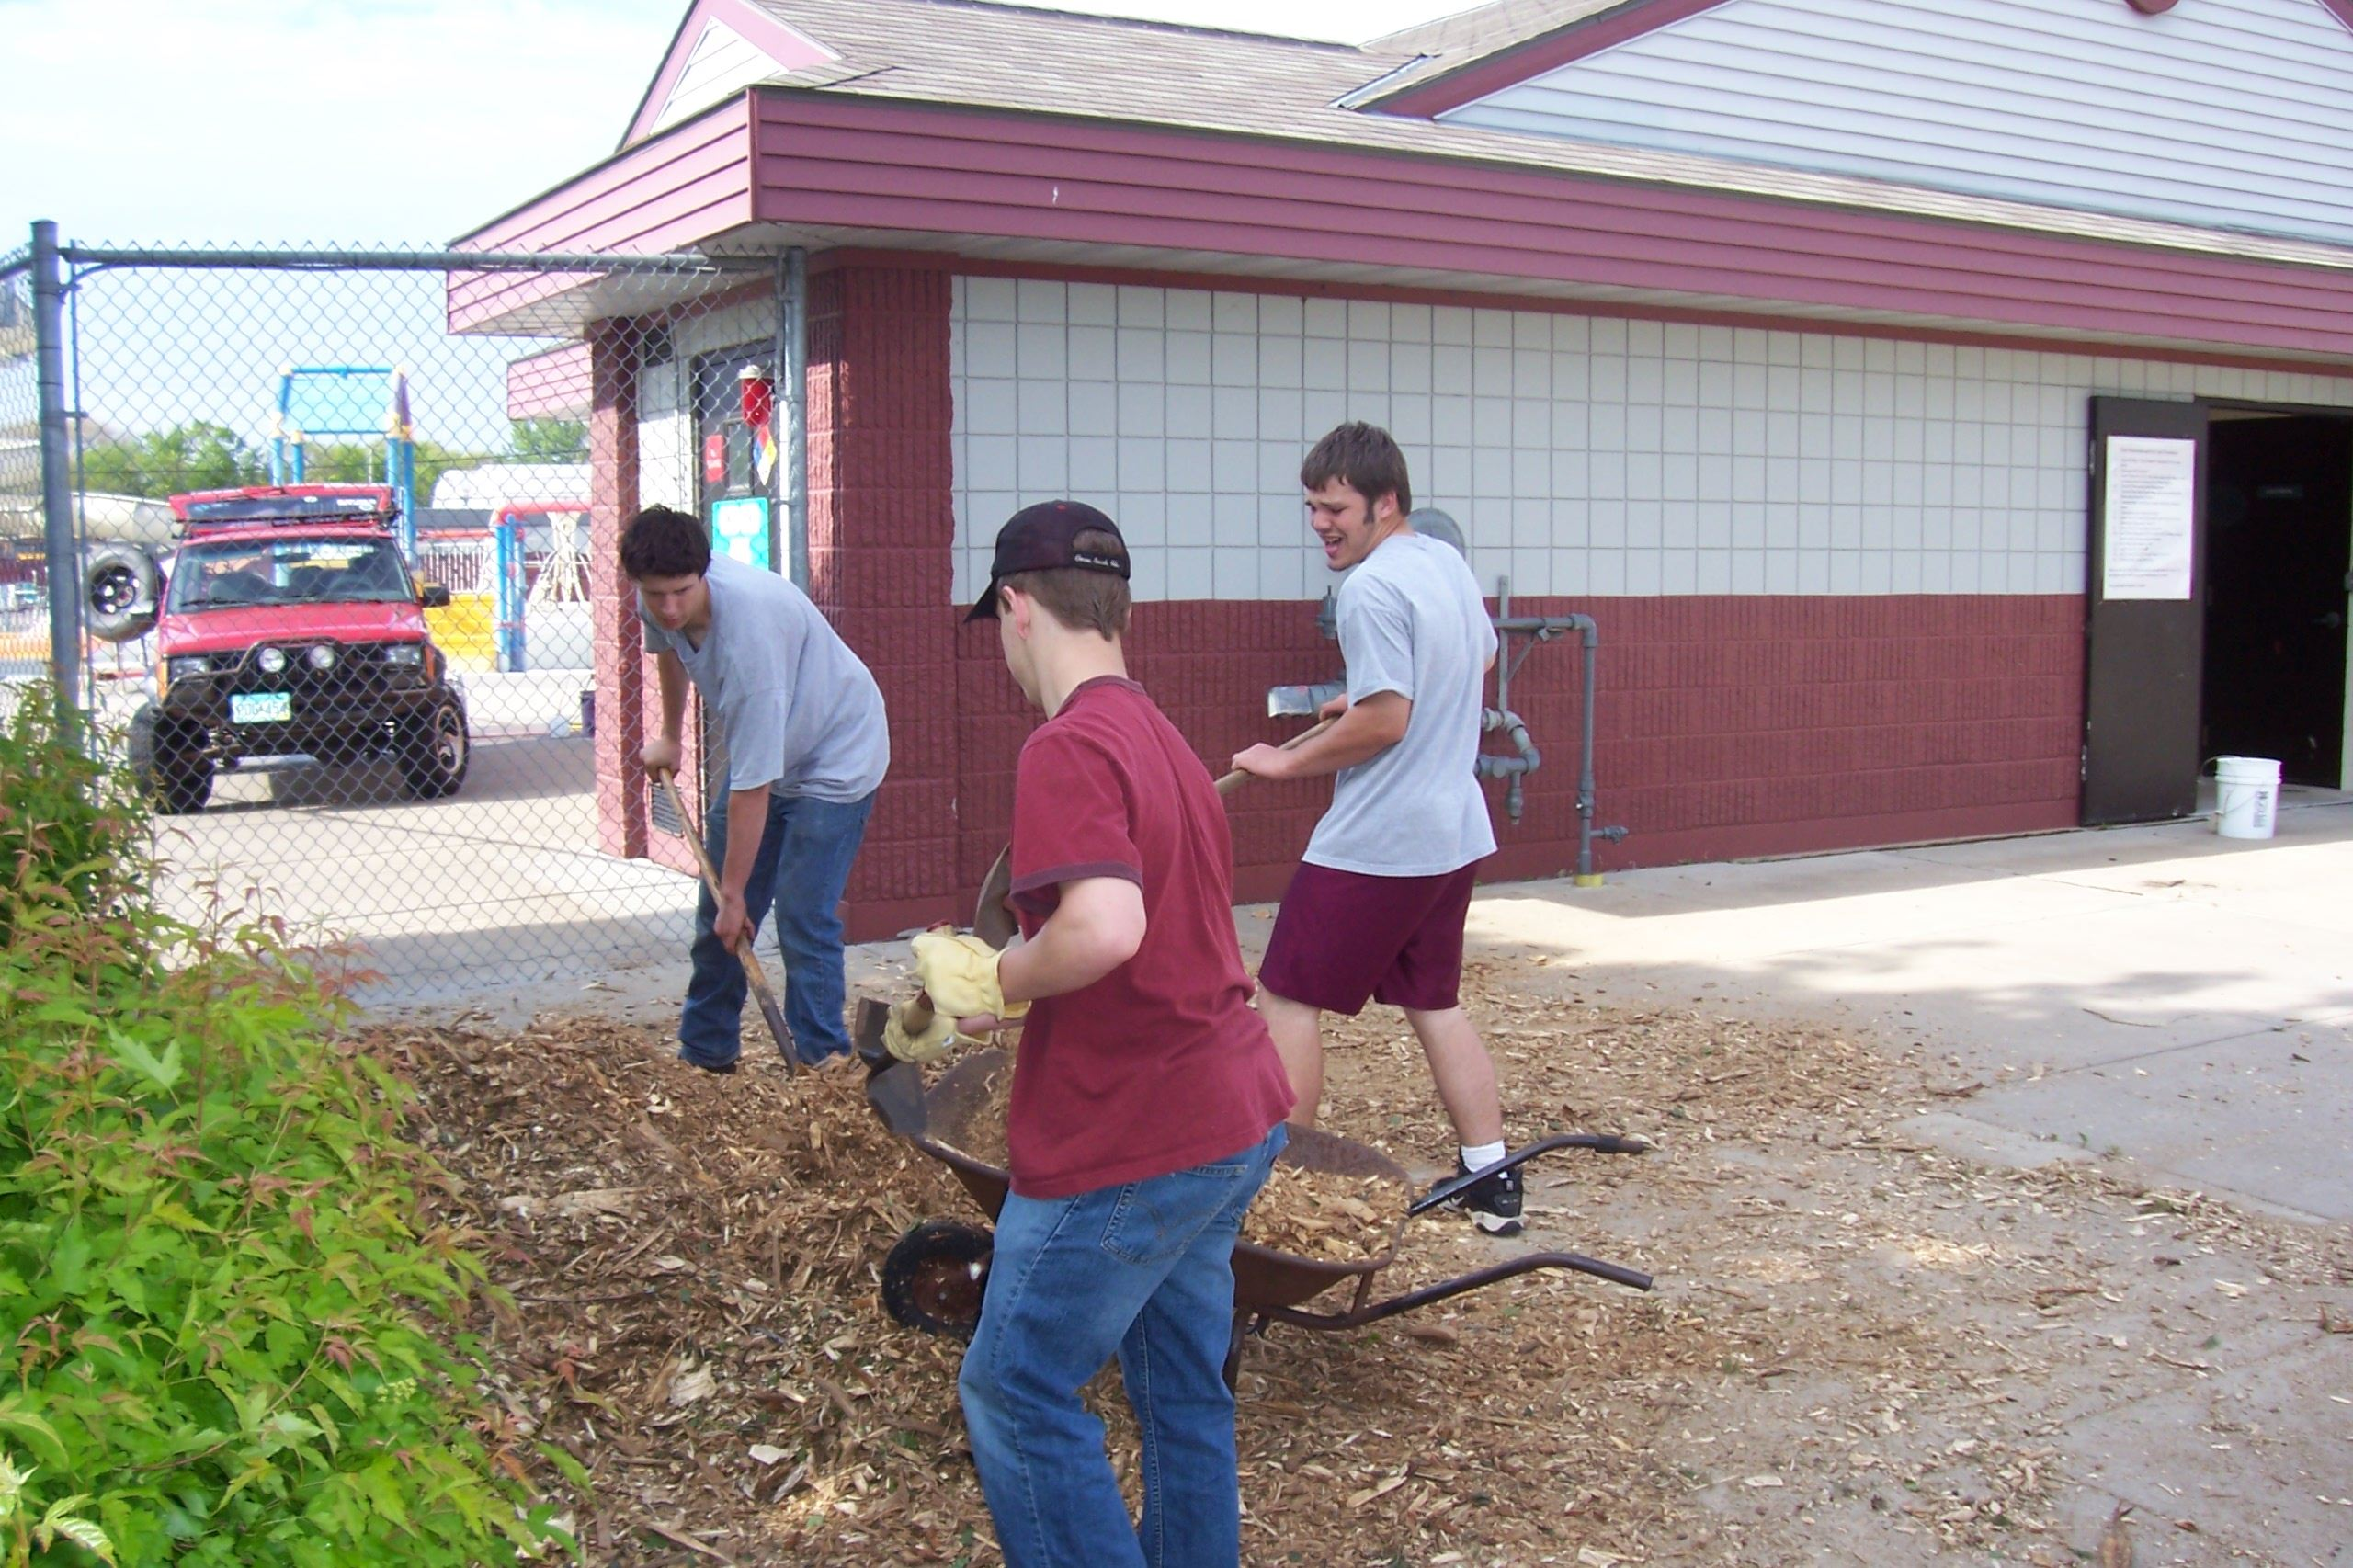 Anoka football players spreading wood chips in landscaping